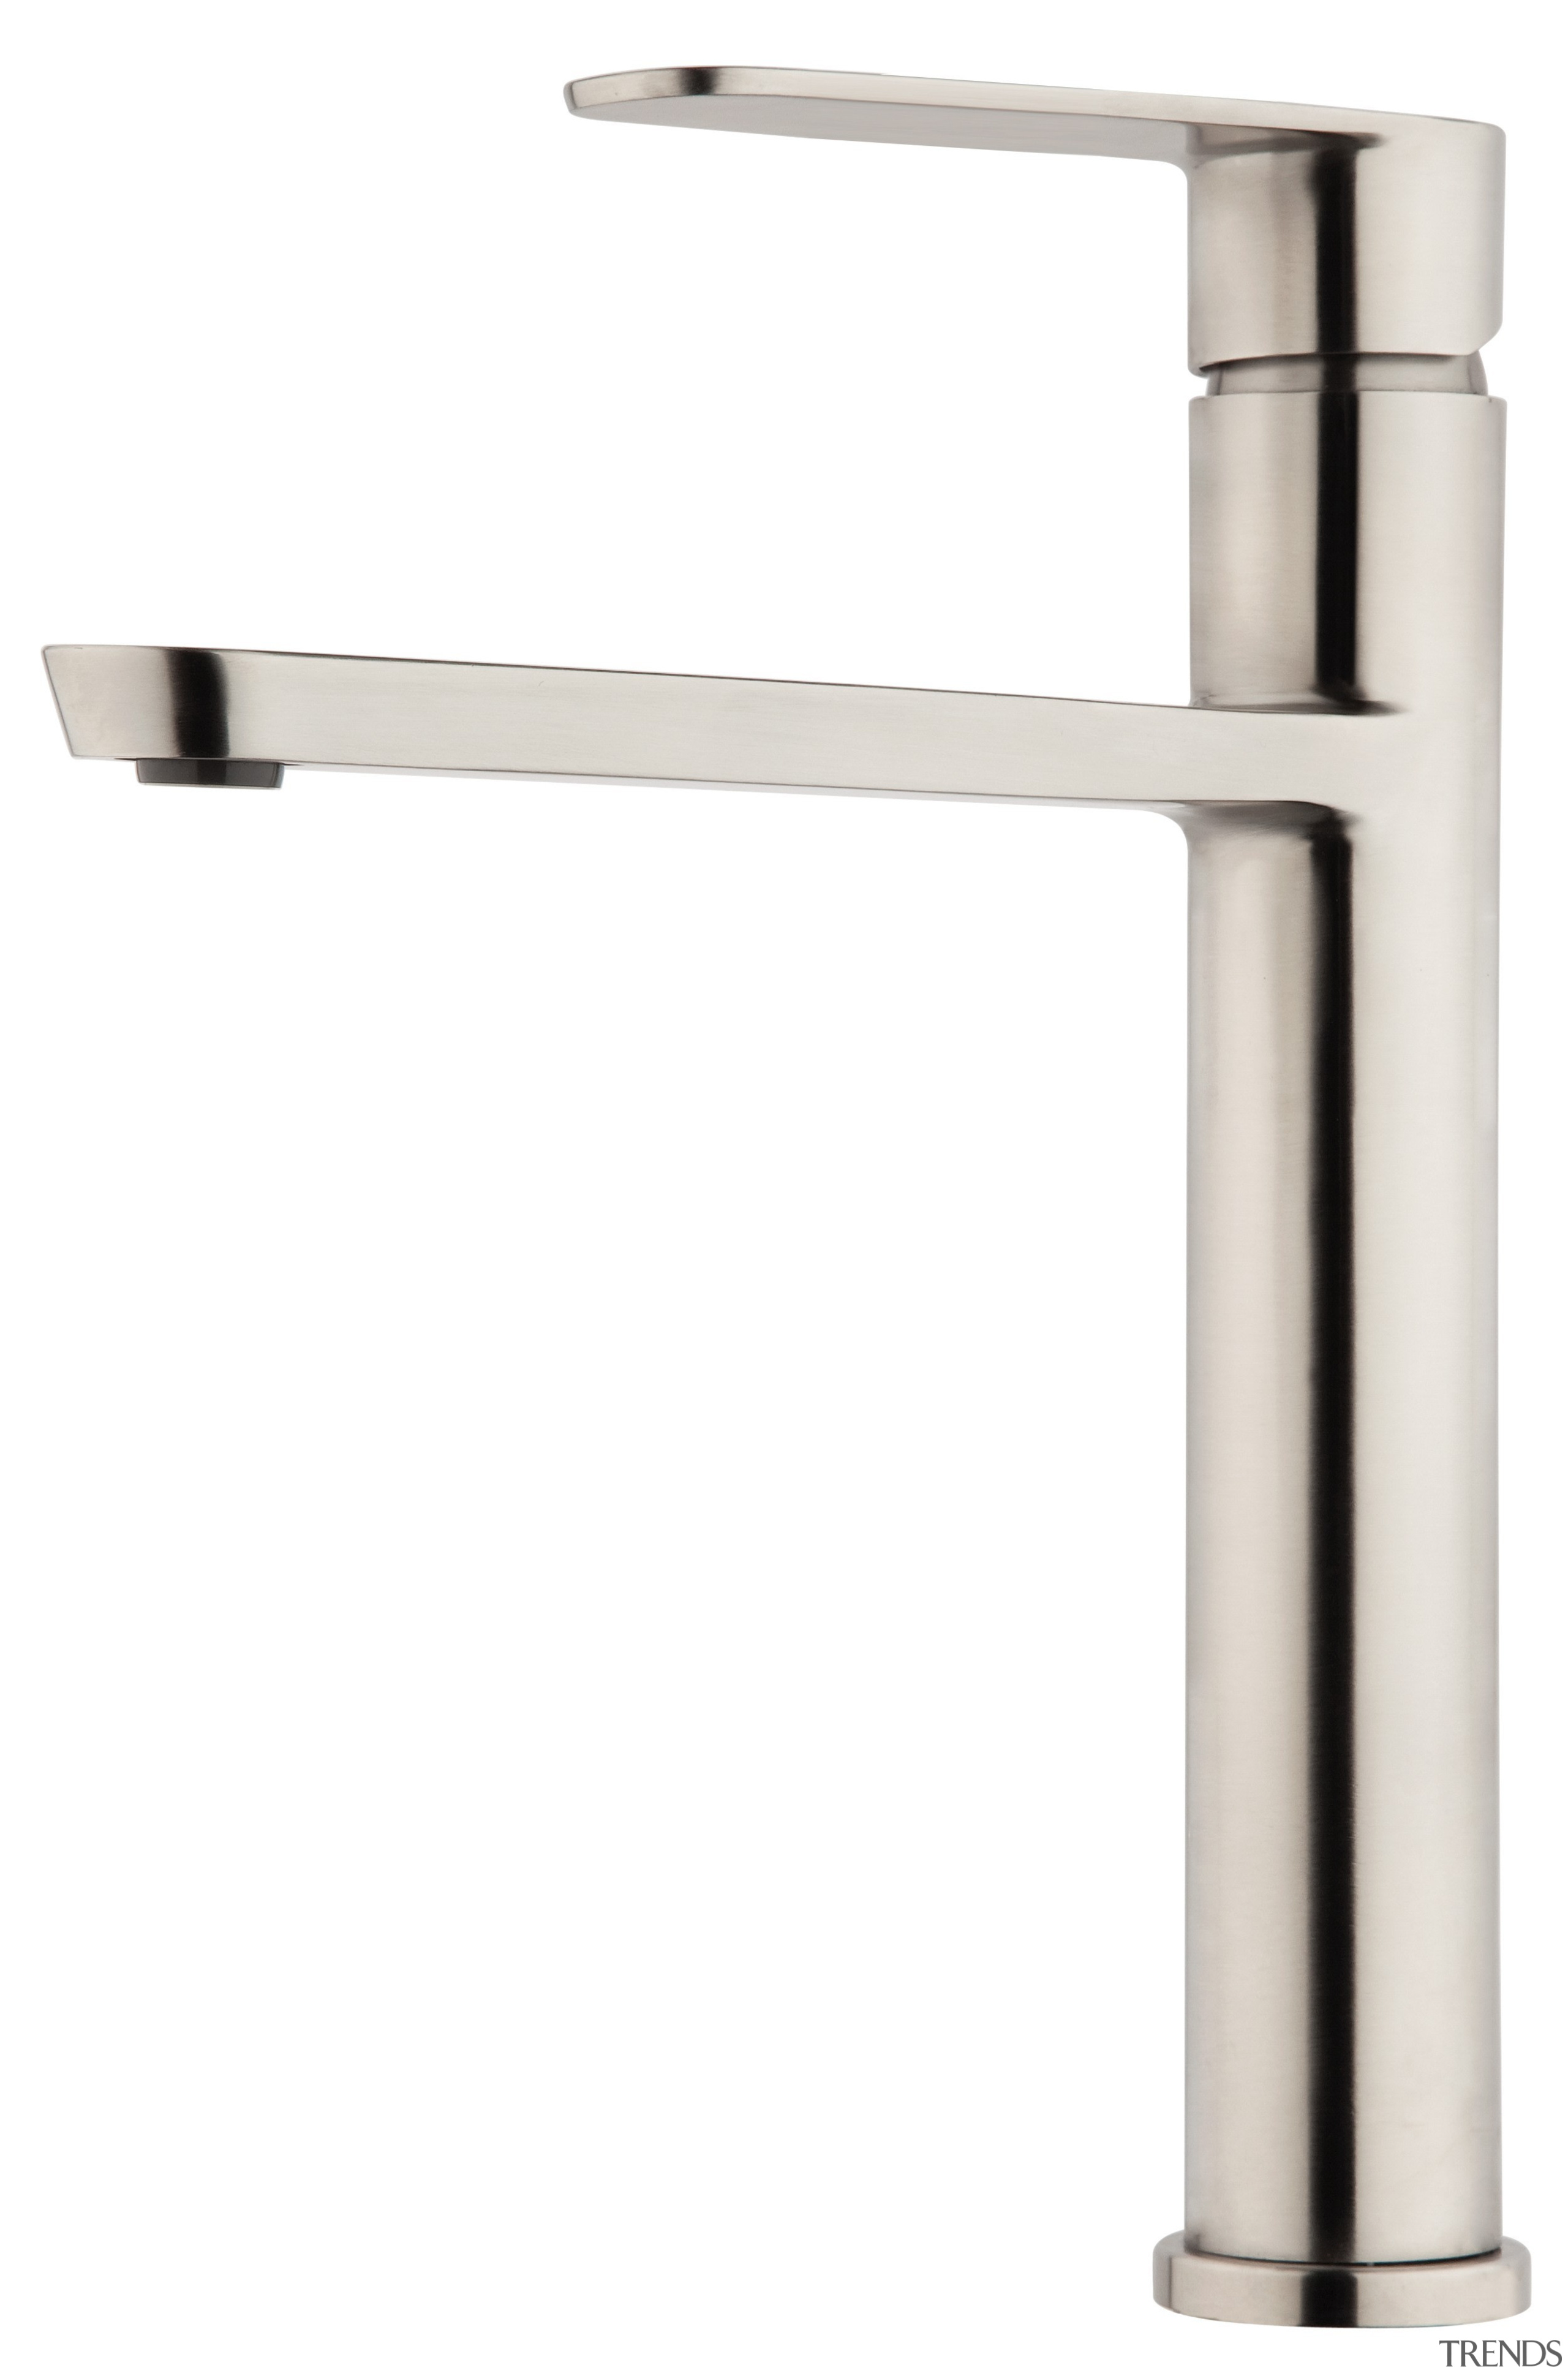 Purity Emotion Sink Mixer PUR010 - Purity Emotion hardware, lighting, plumbing fixture, product design, tap, white